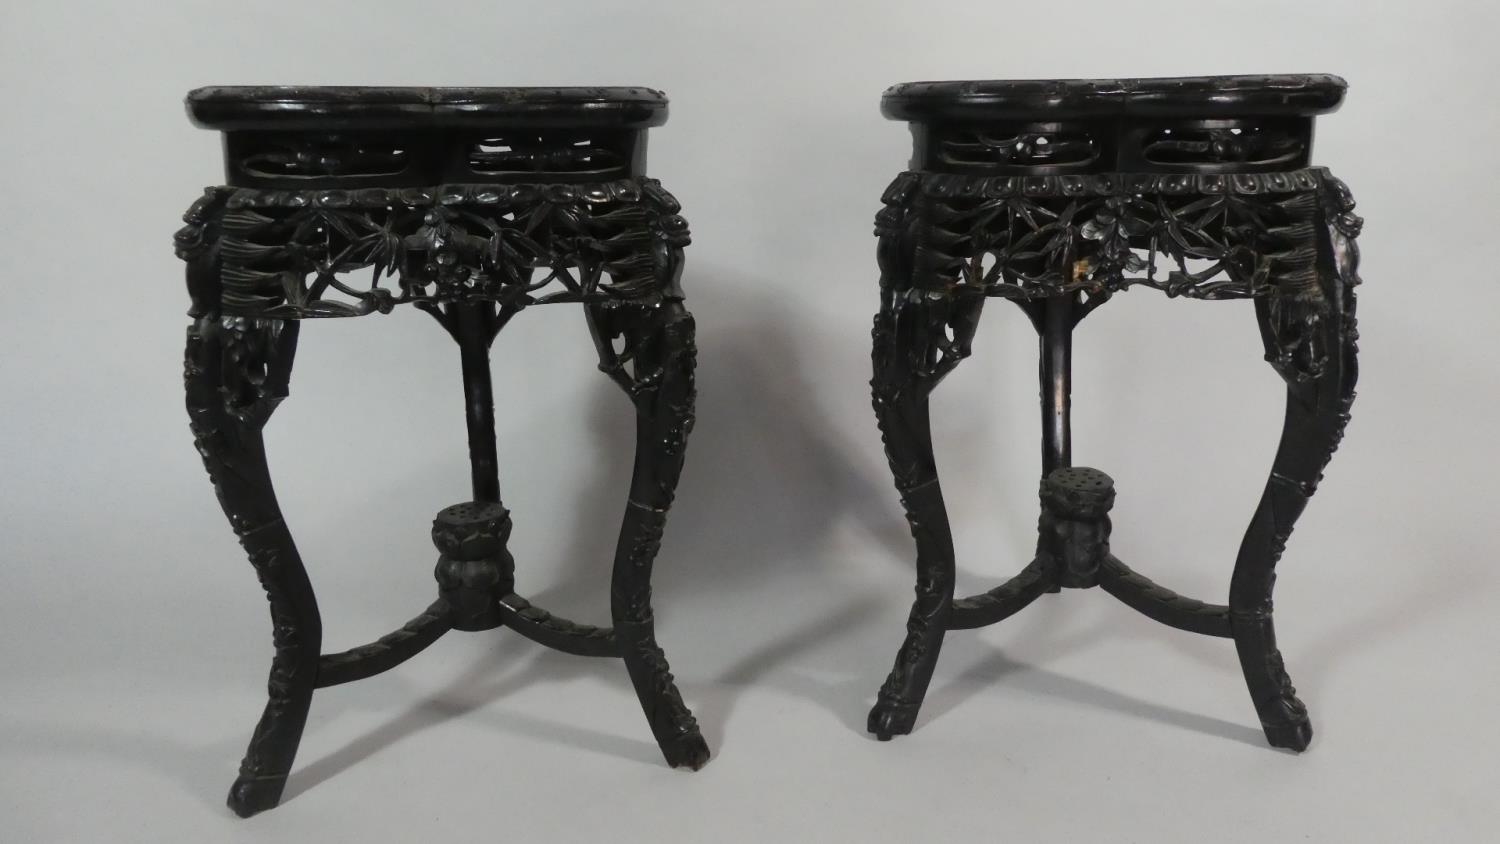 Lot 53 - A Pair of Chinese Hardwood Vase Stands of Tri-form Shape with Carved, Pierced and Moulded